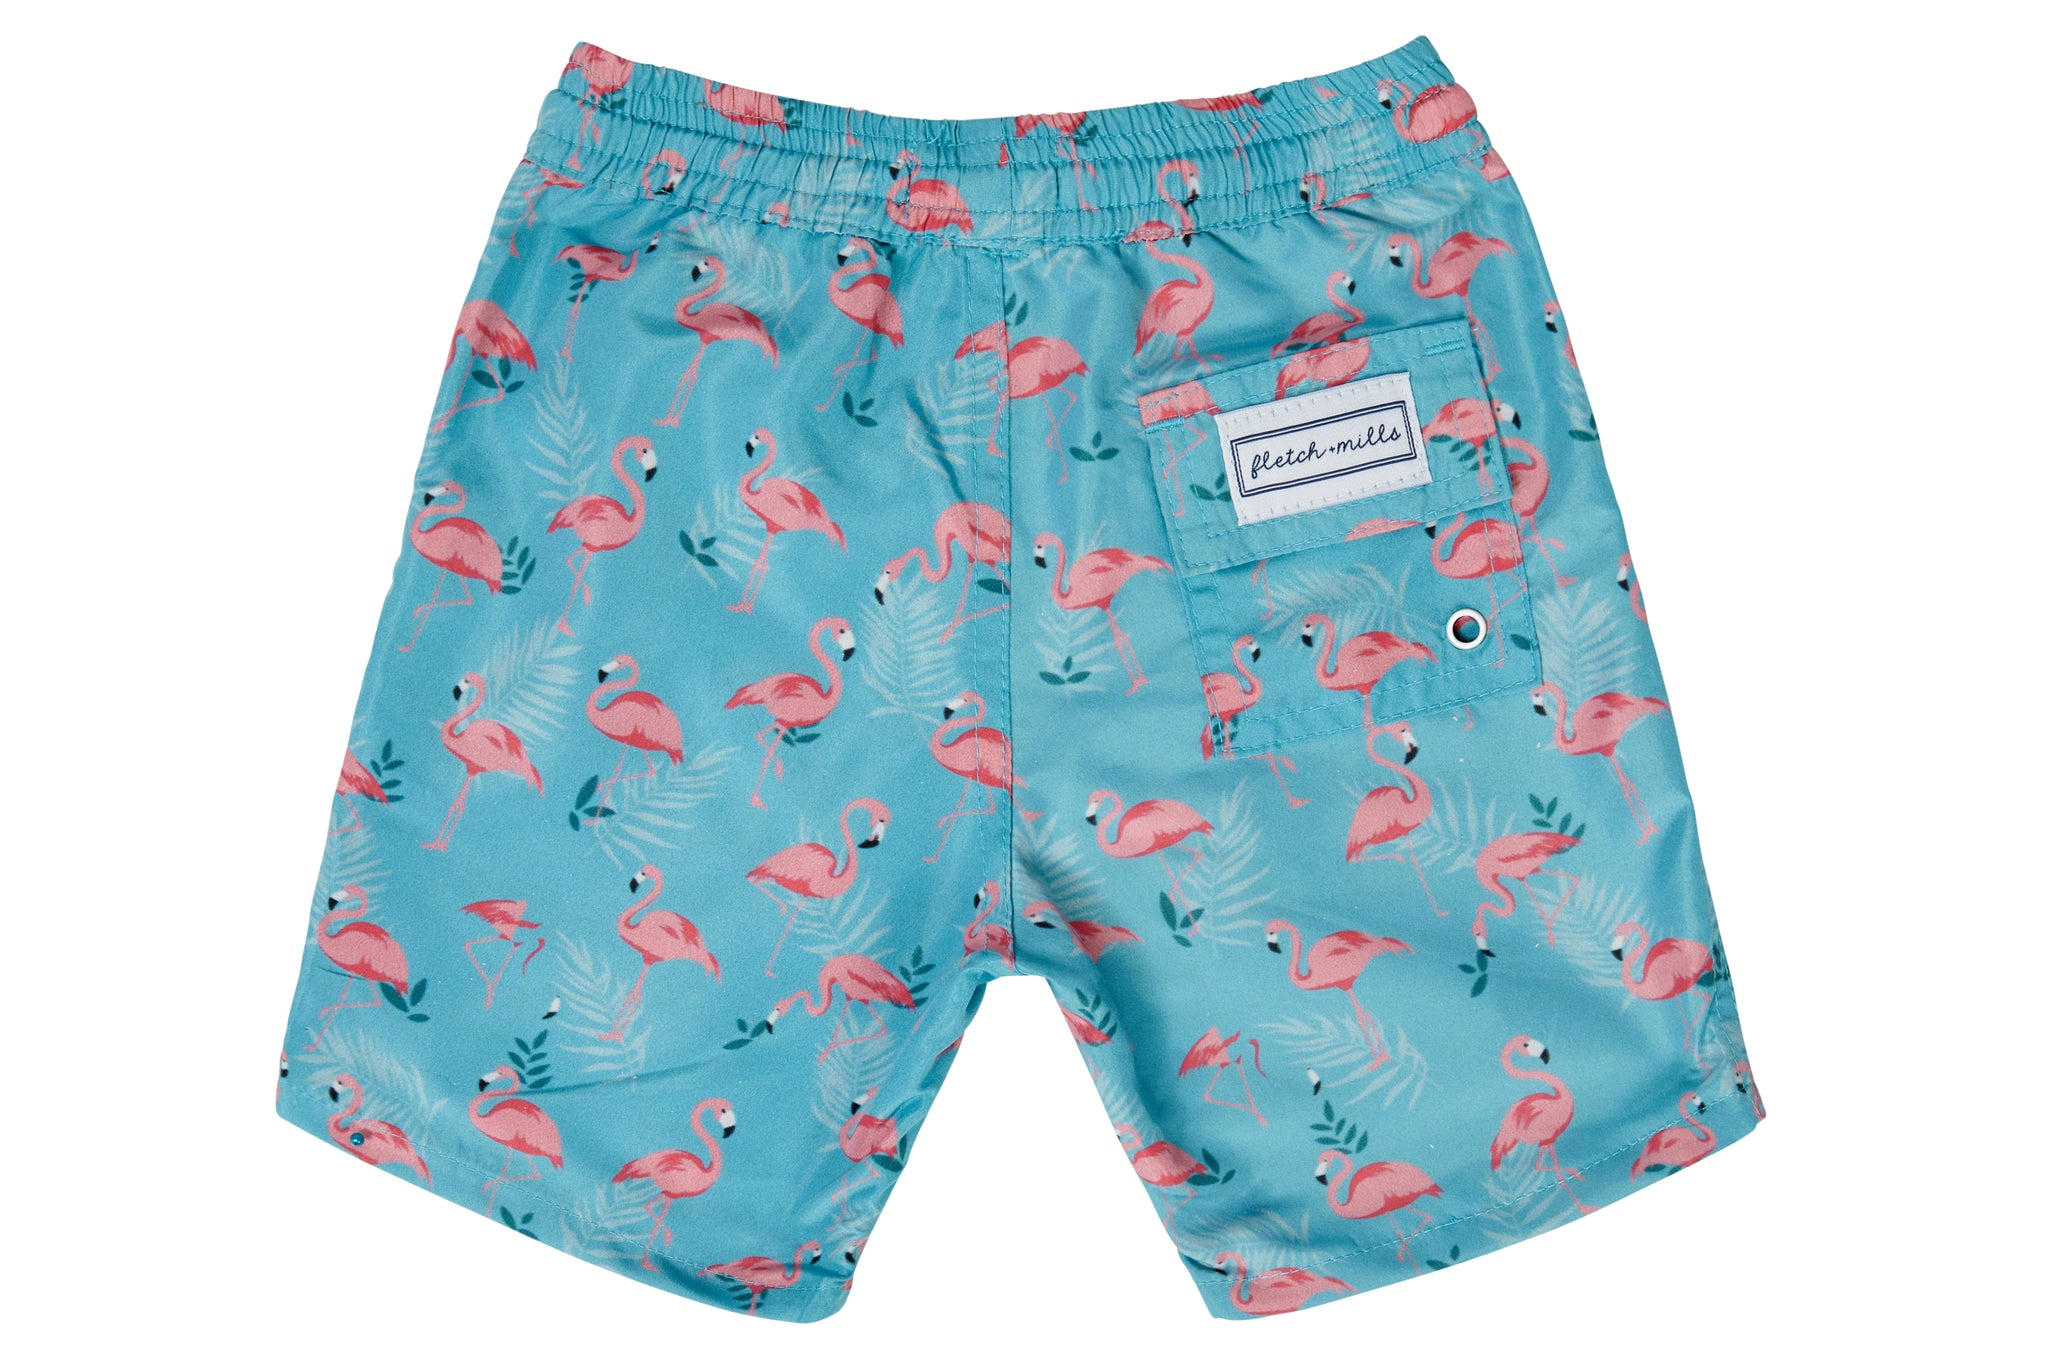 Boys - Green and Pink Flamingo Print Matching Swim Shorts